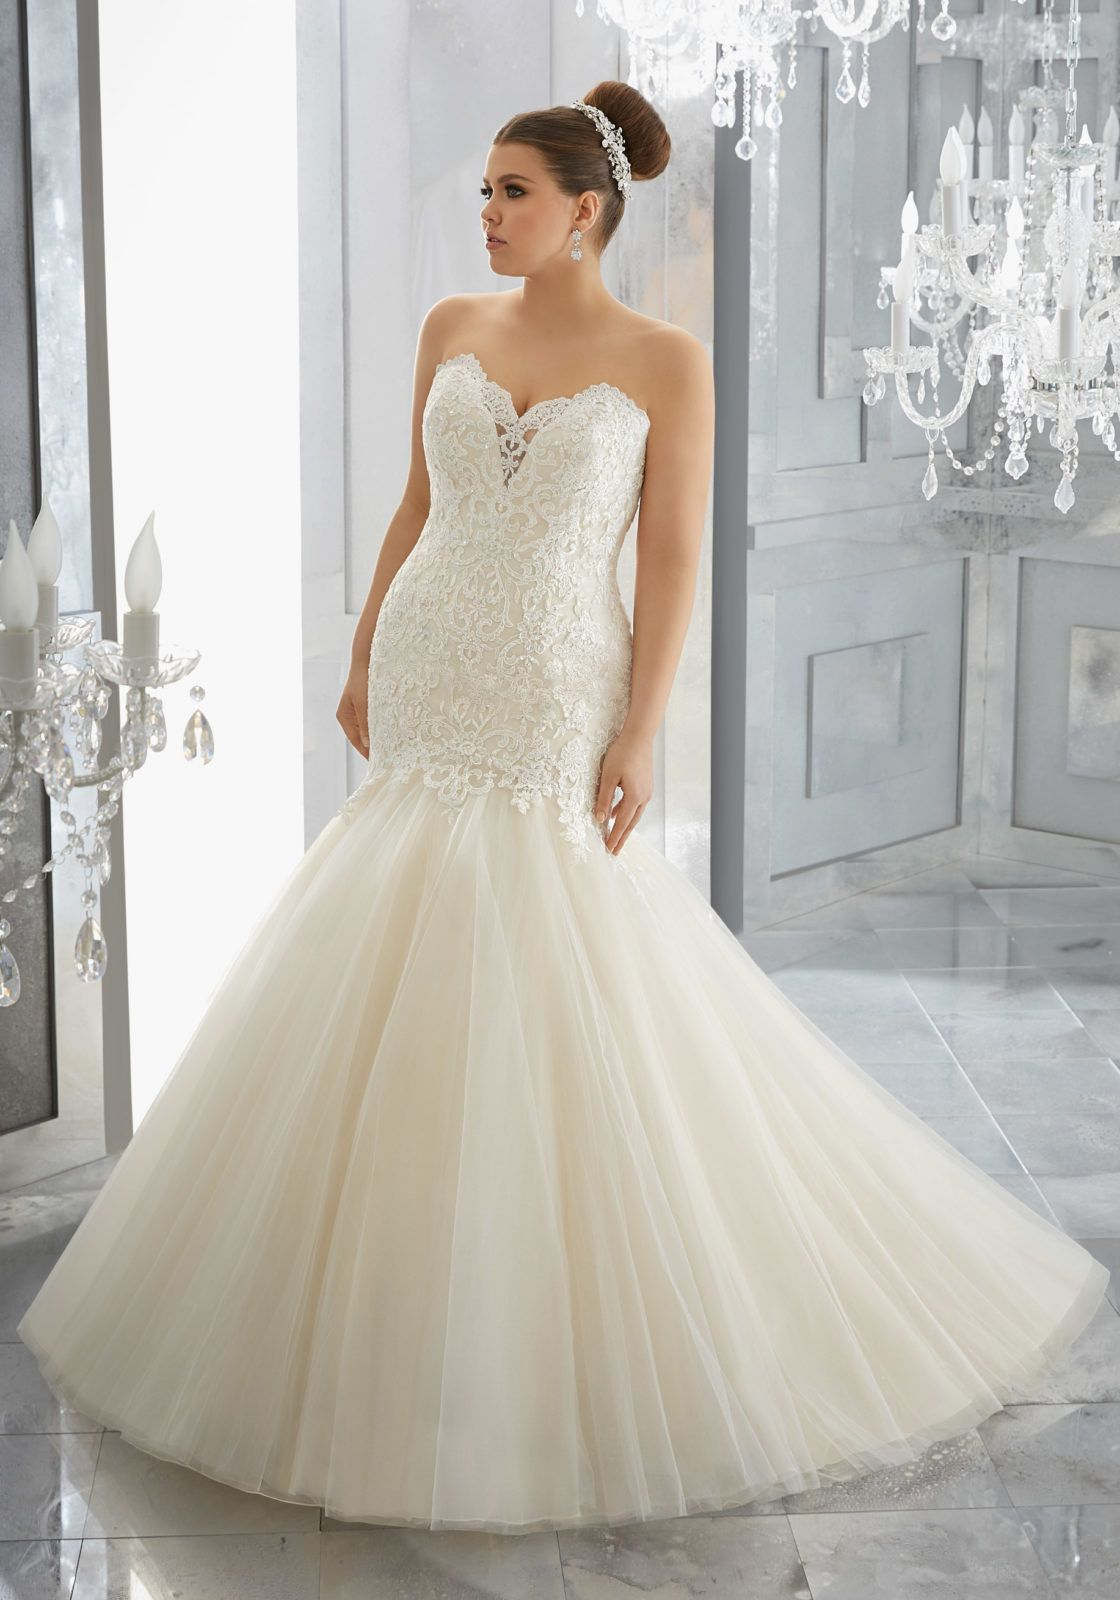 Fashion friday plus size wedding dress collection mori lee